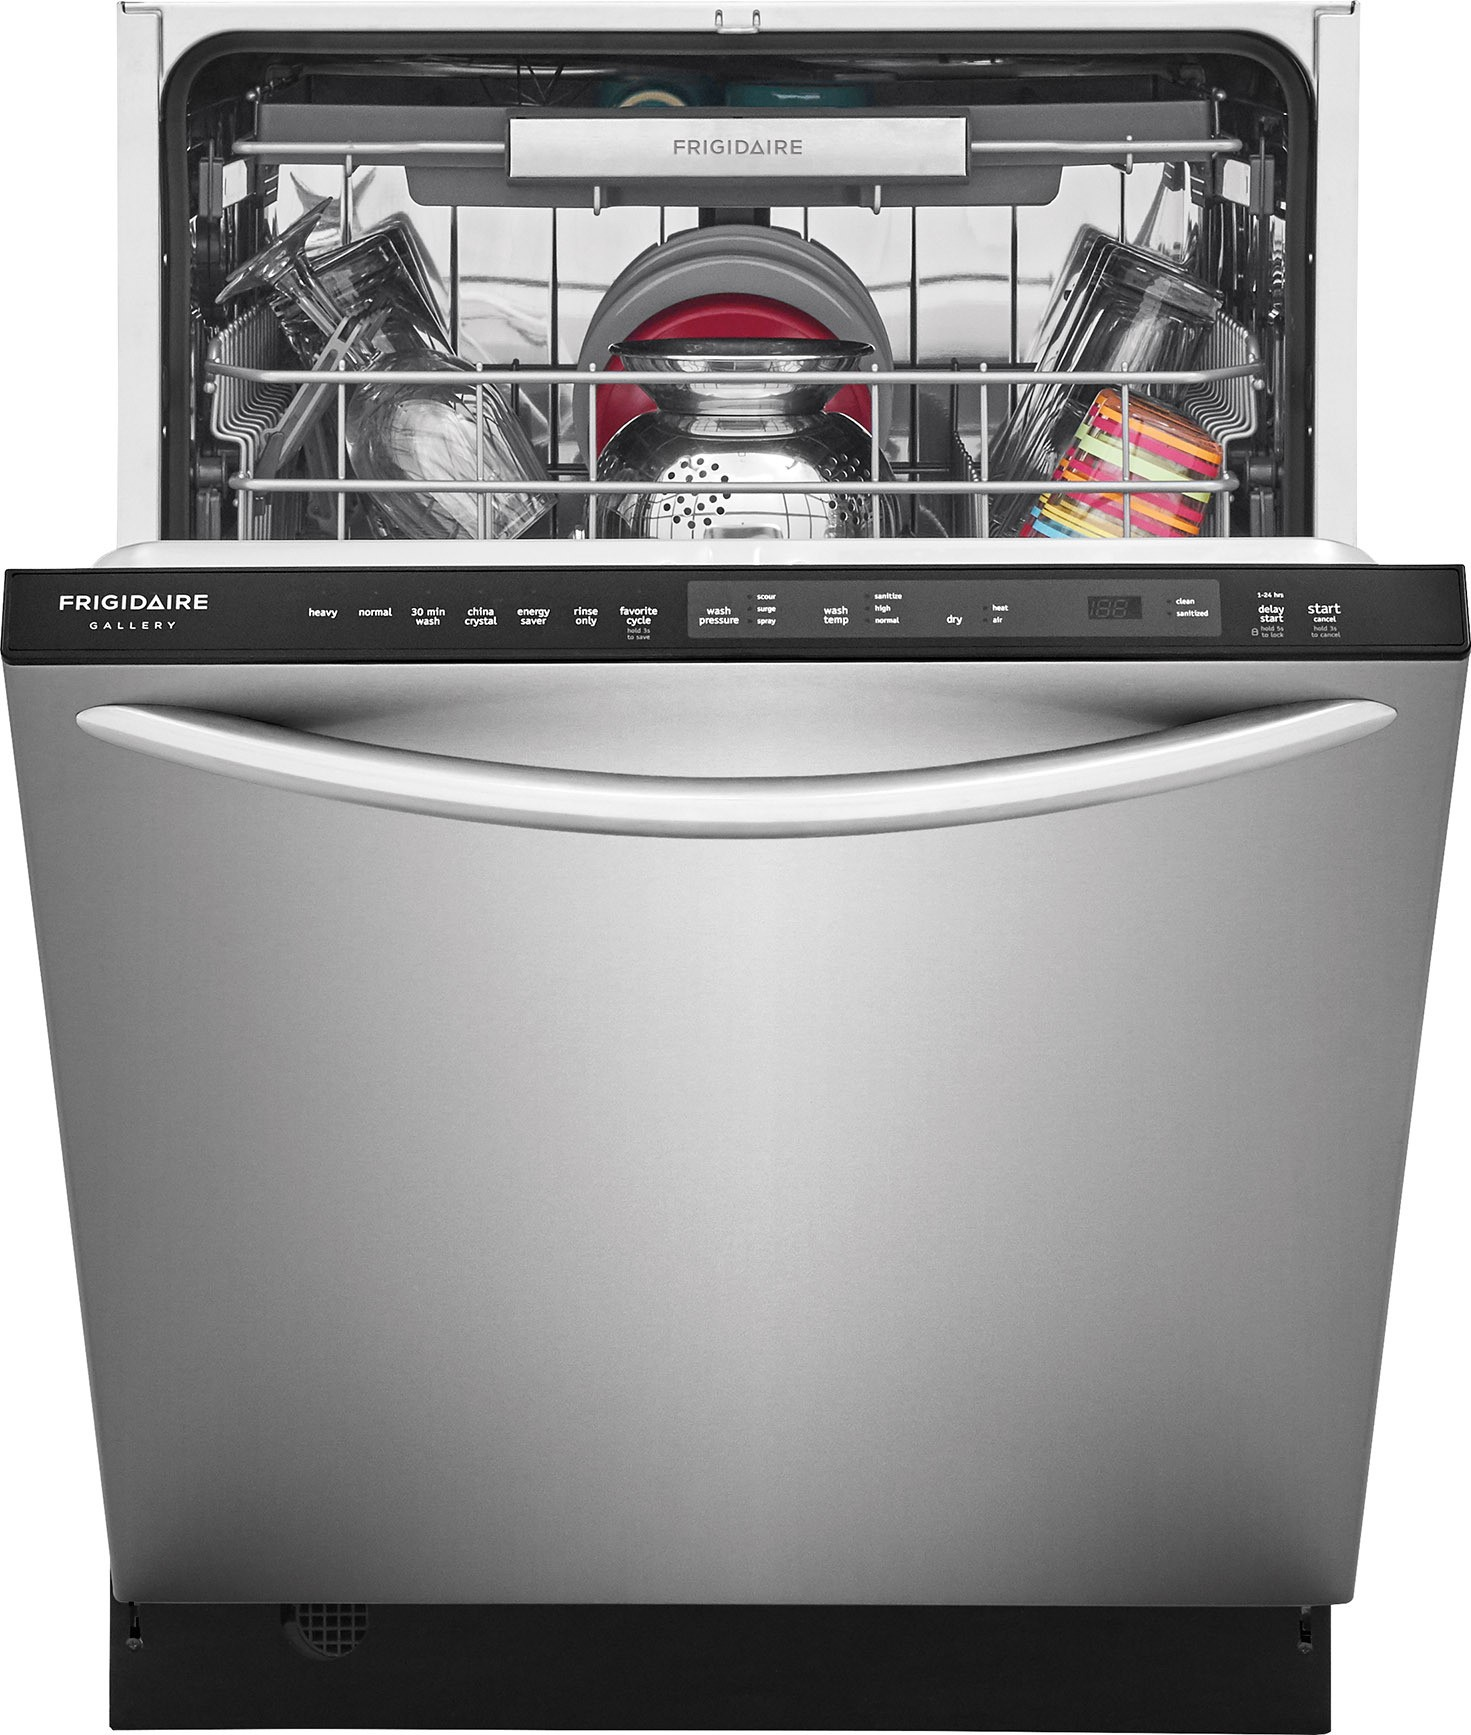 Fgid2479sf Frigidaire Gallery 24 Quot Built In Dishwasher